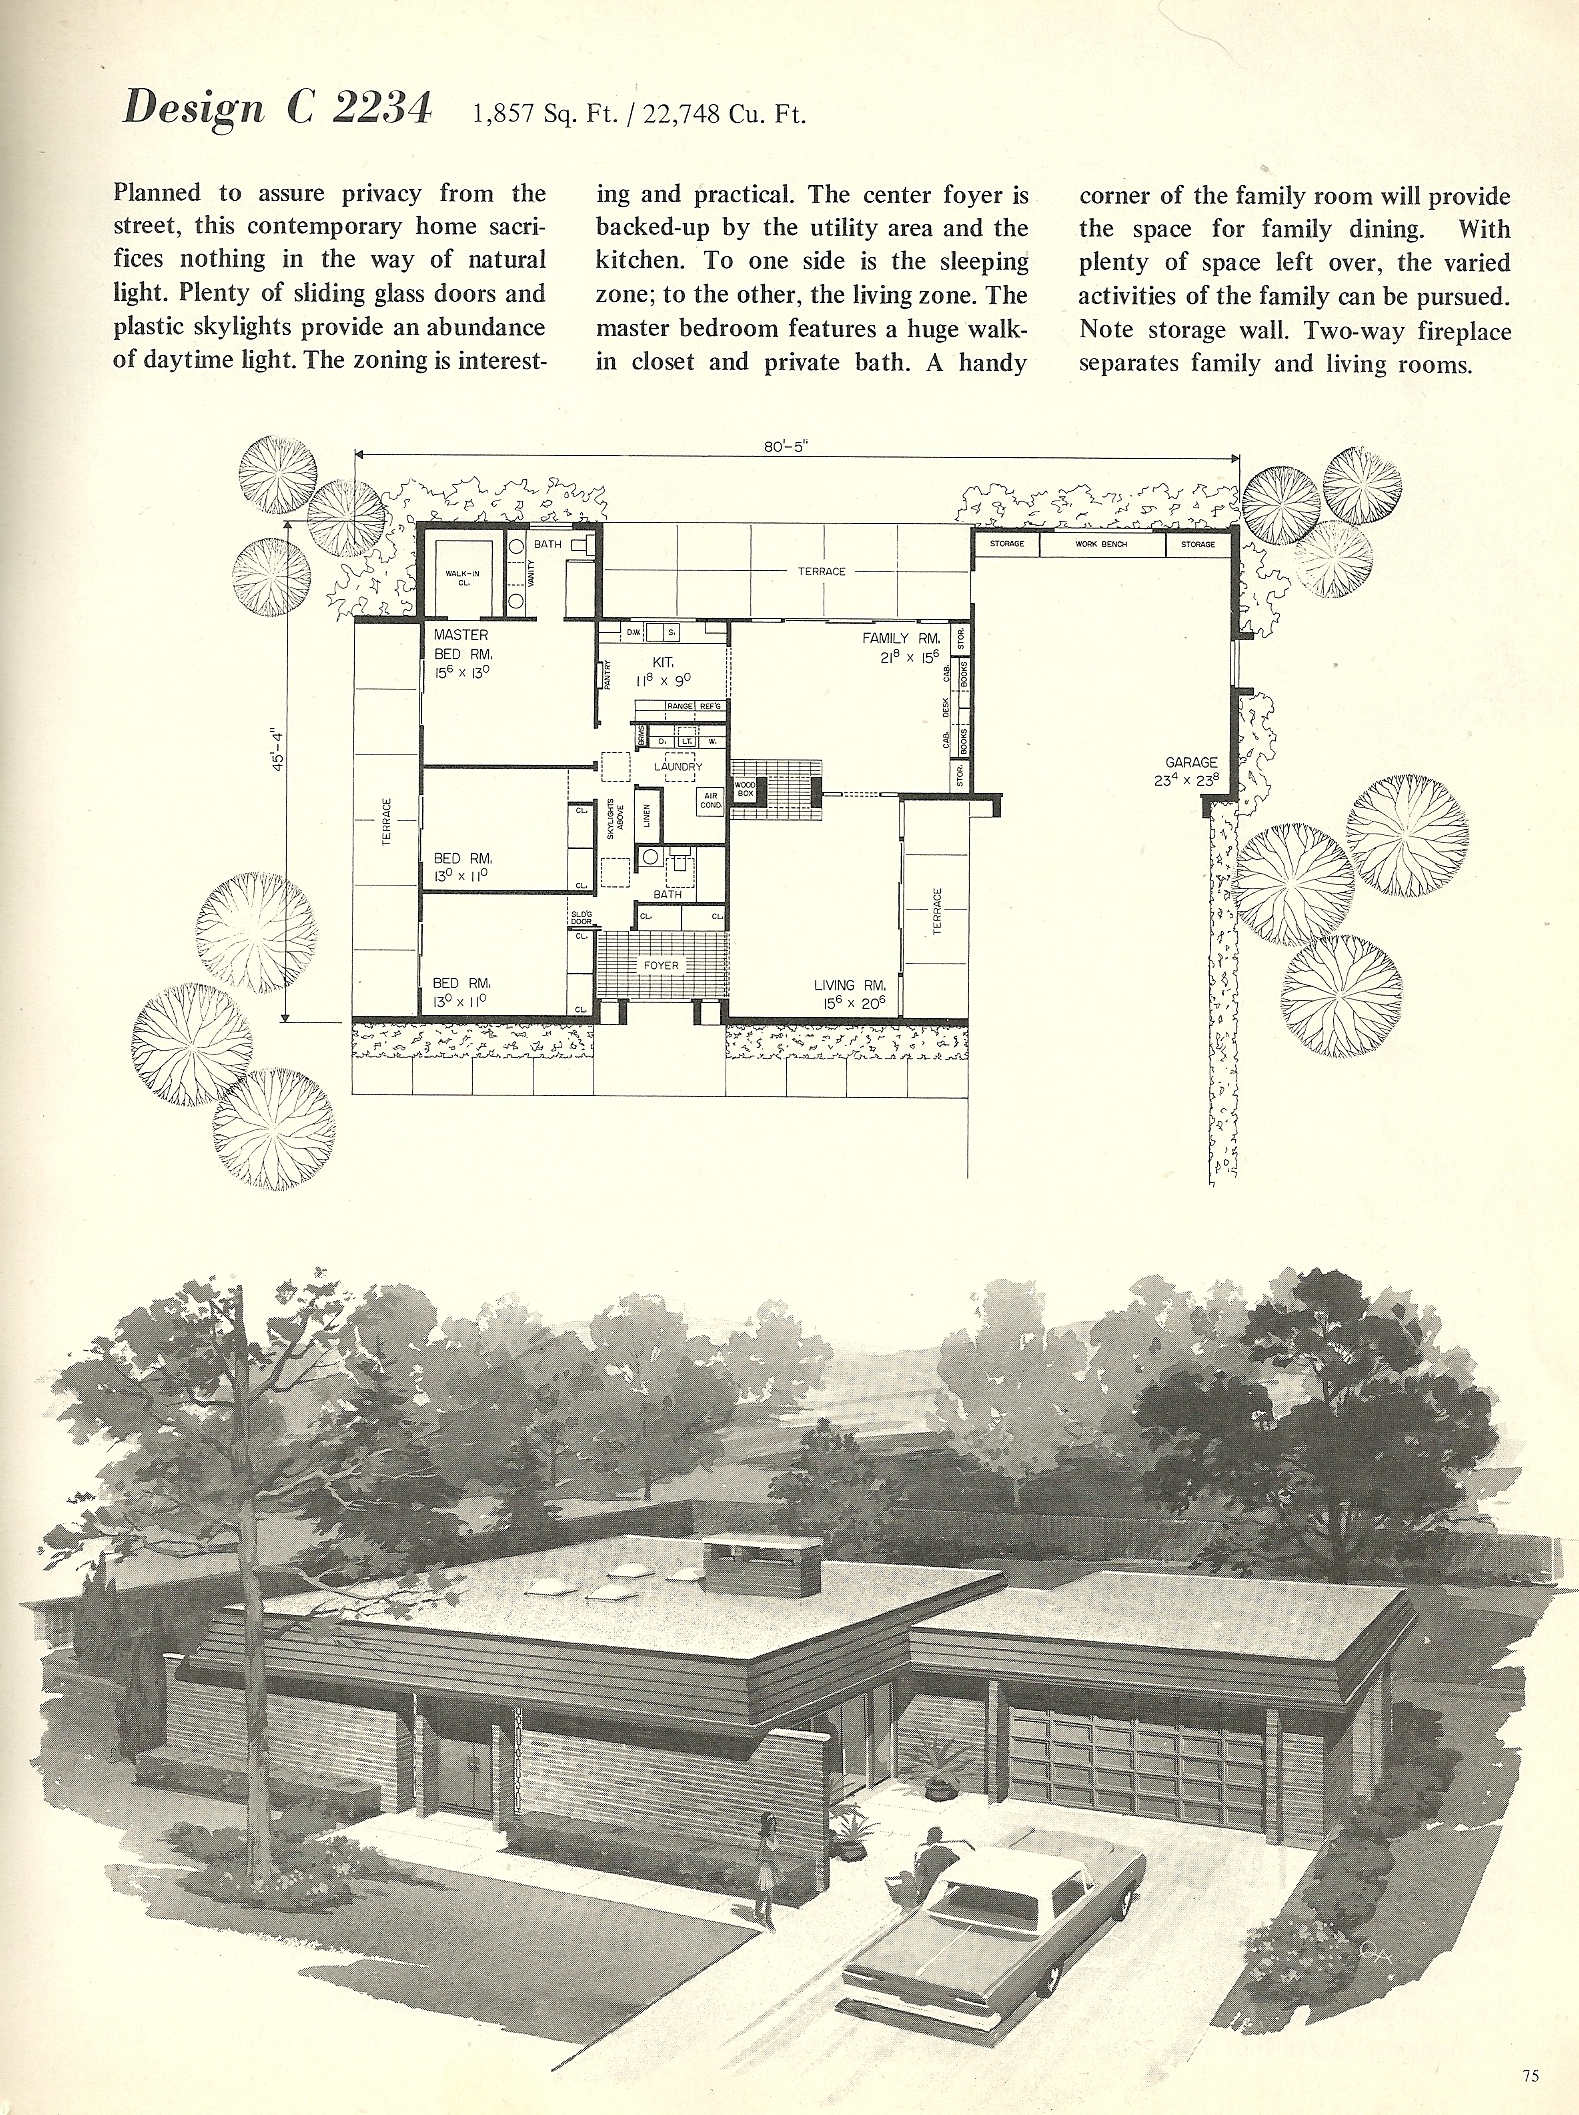 Vintage house plans 2234 antique alter ego - Retro home design ...